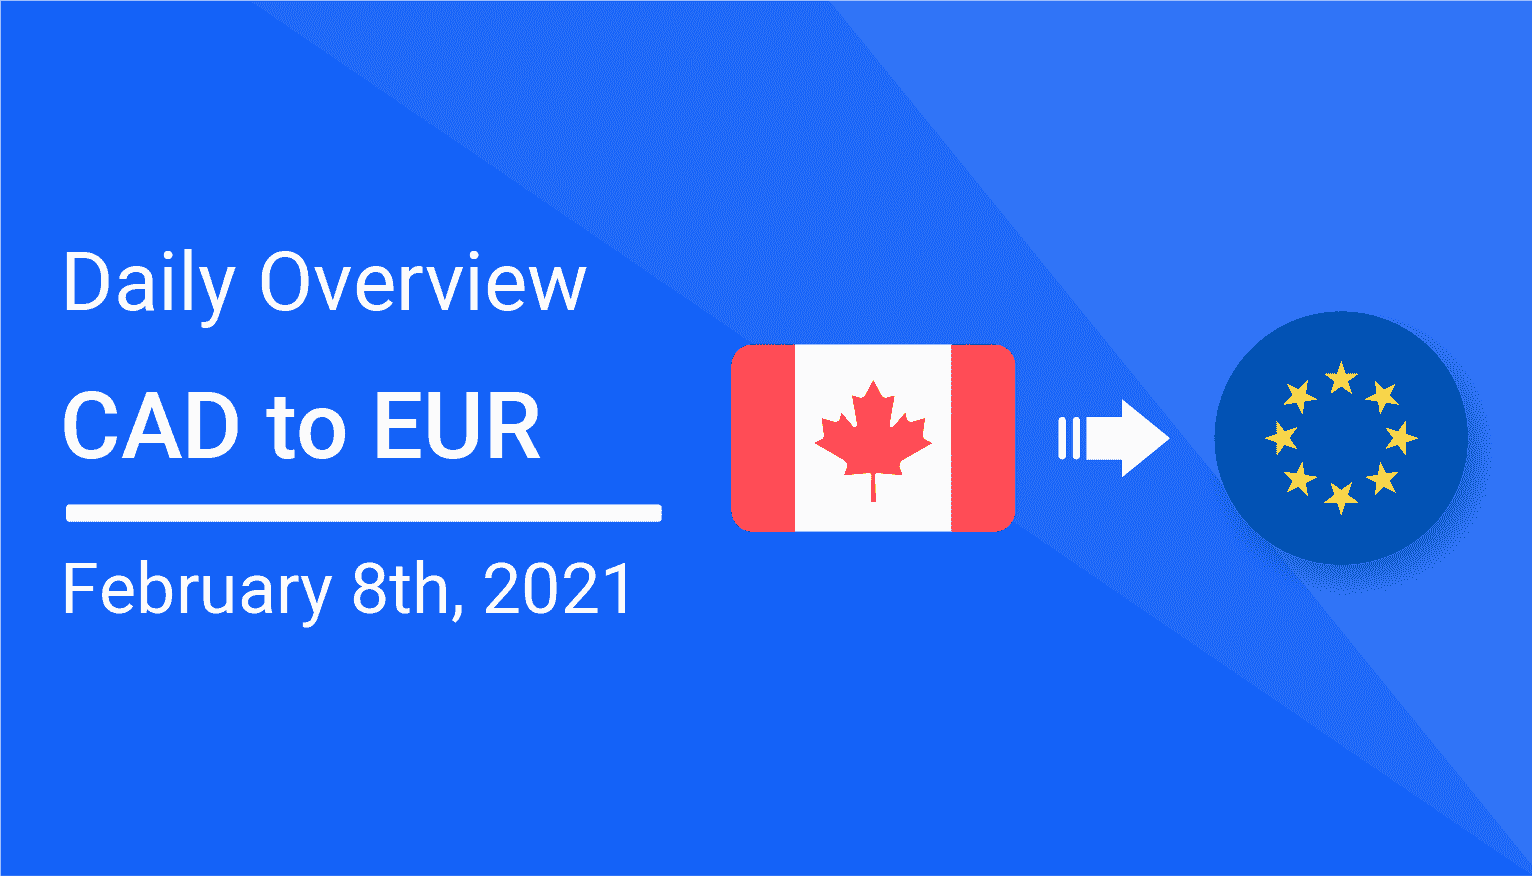 CAD to EUR Daily Overview: February 8th